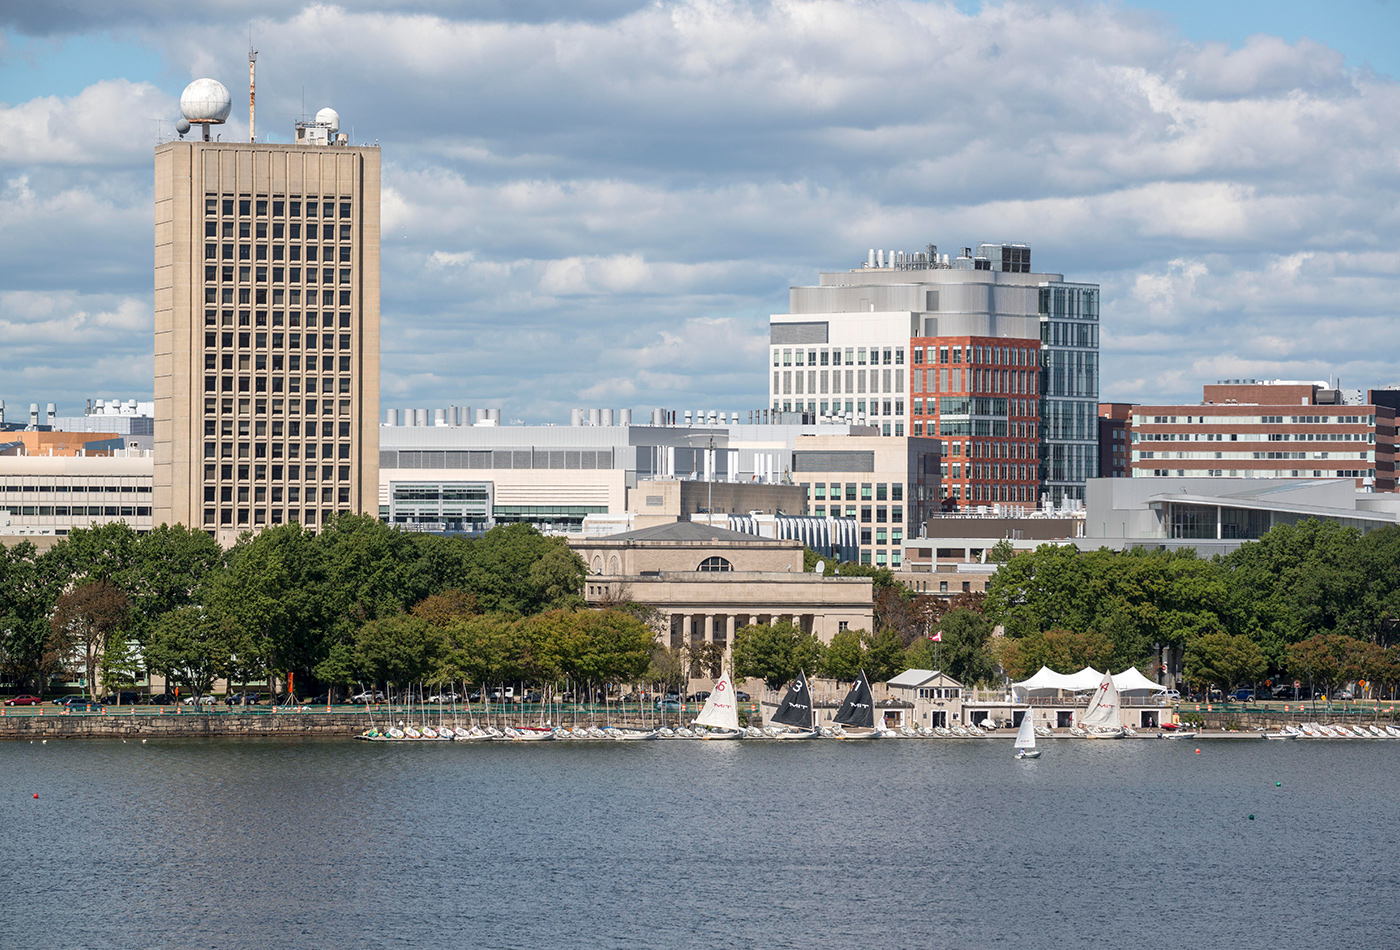 A view of MIT campus from across the Charles River